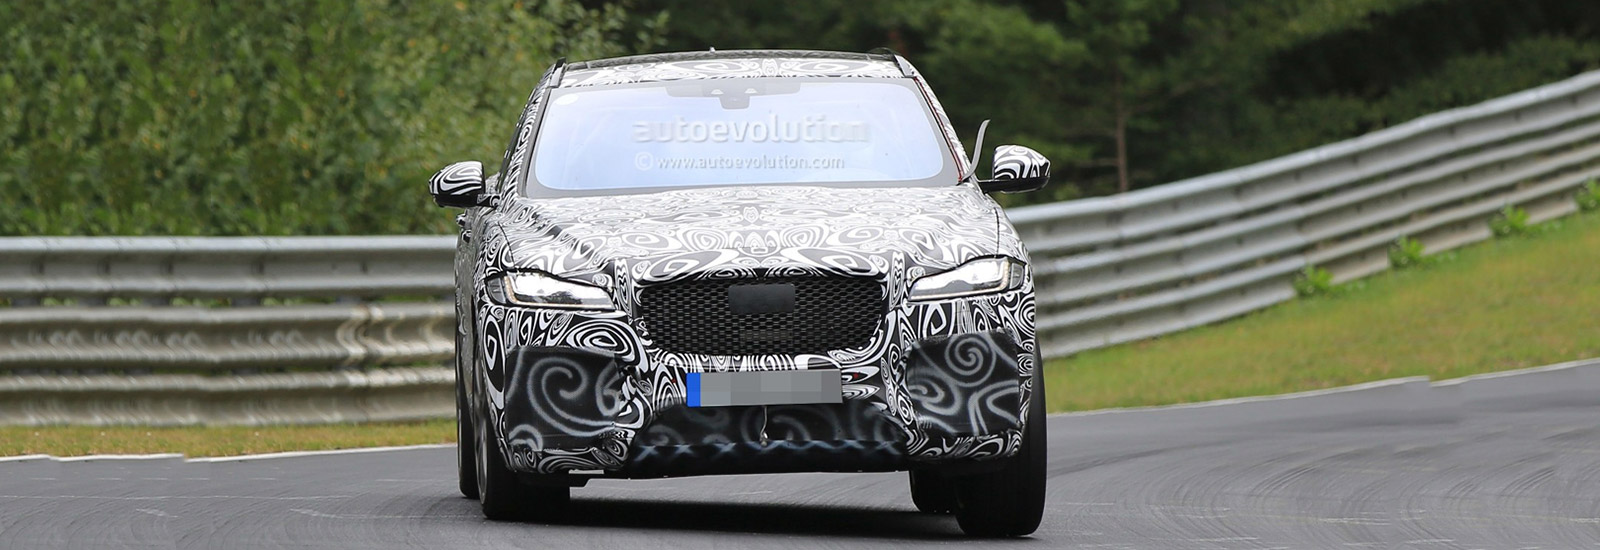 2018 jaguar f pace svr. perfect pace sport svr to the brandu0027s ranks with more high performance models  expected in future spy shots courtesy of autoevolution give us our best idea throughout 2018 jaguar f pace svr